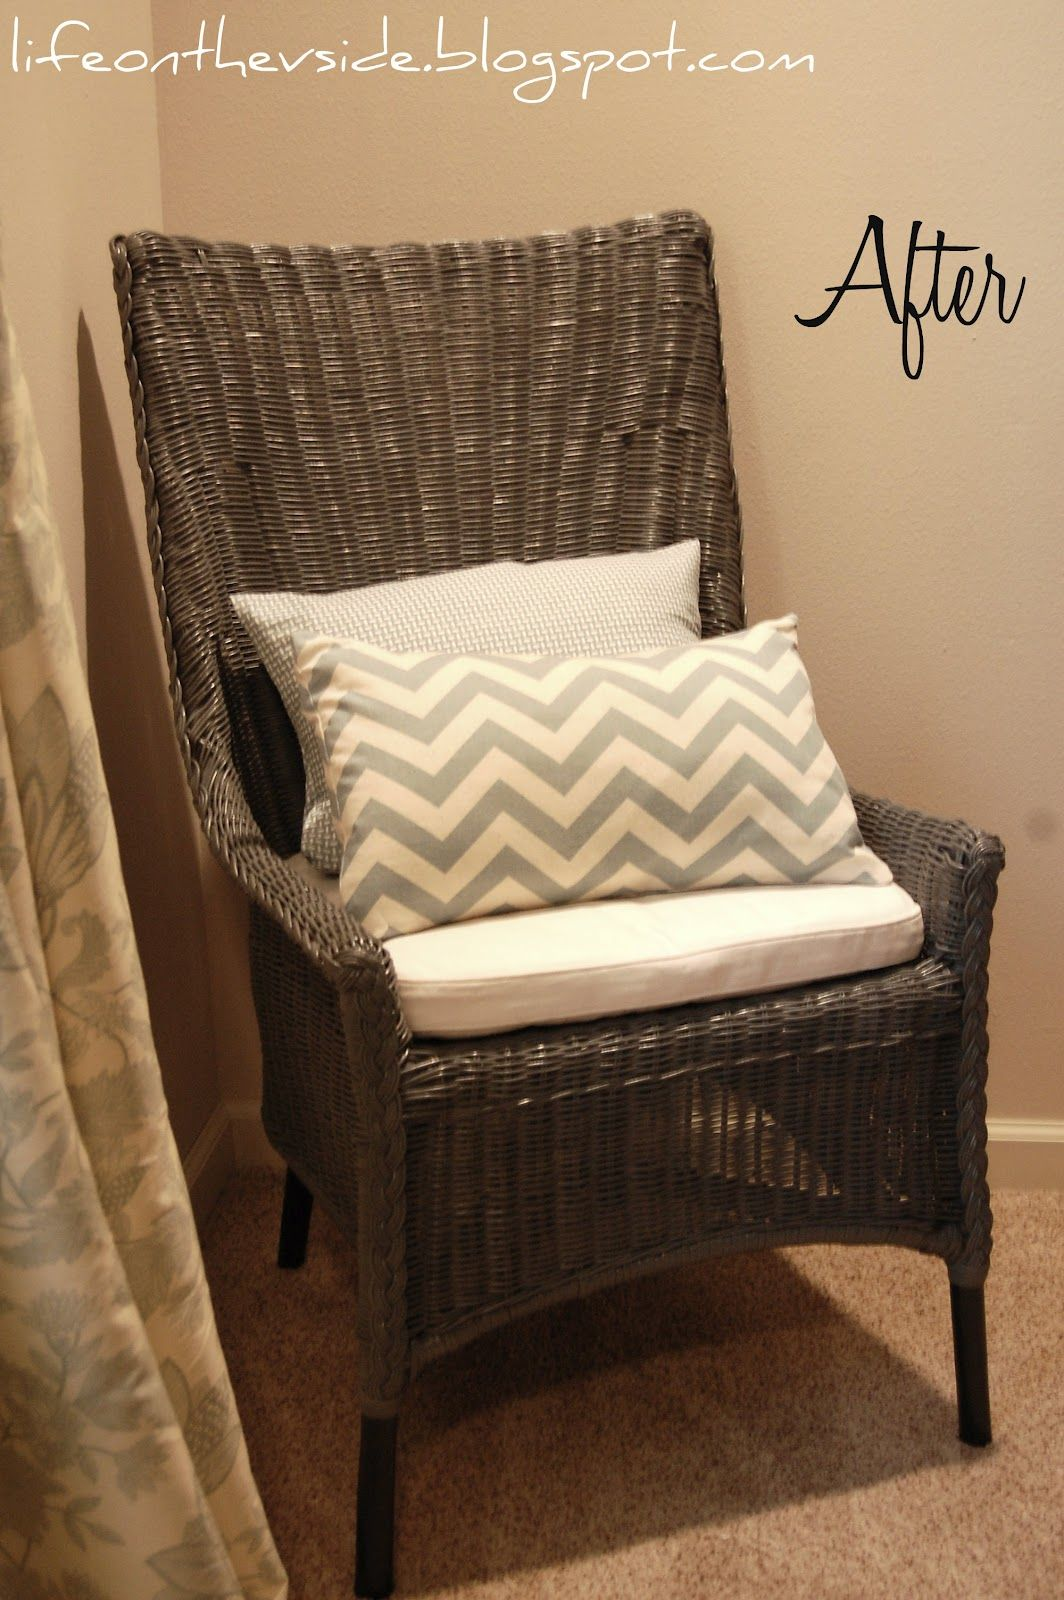 Attirant Wicker Chair Makeover RustOleum Granite Minwax Dark Walnut On The Legs